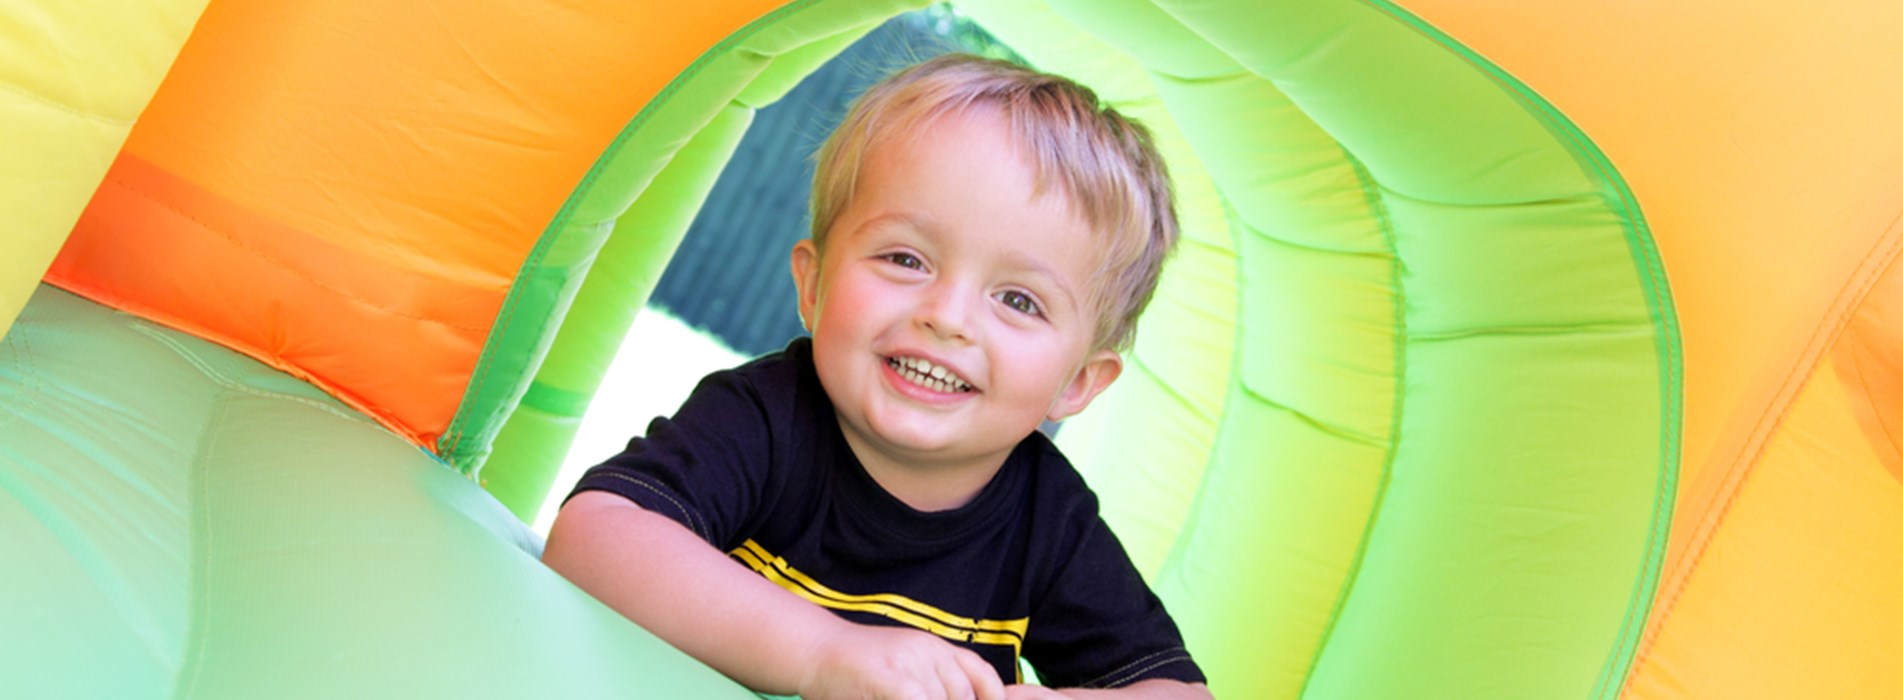 Child in Bouncy Castle